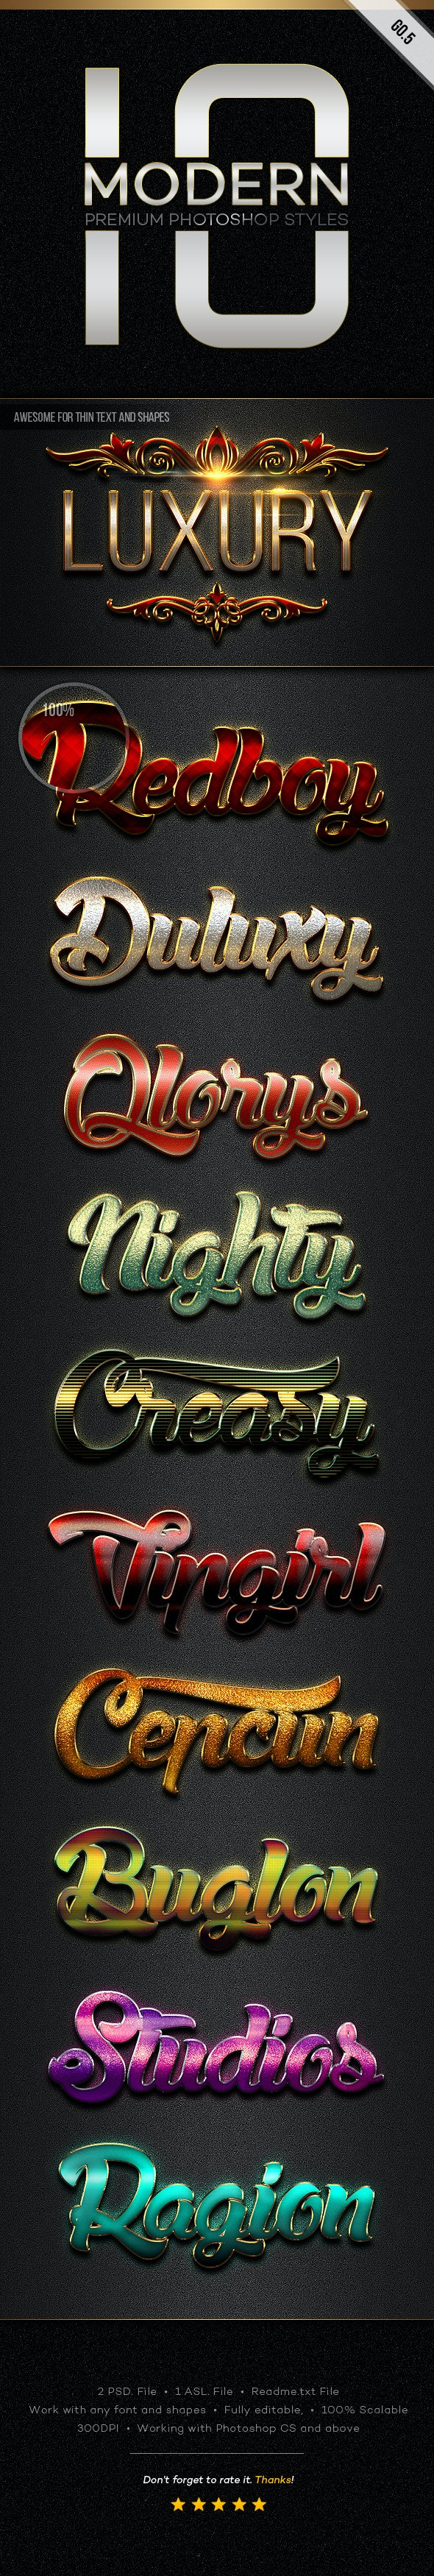 10 Modern Styles GO.5 - Text Effects Styles